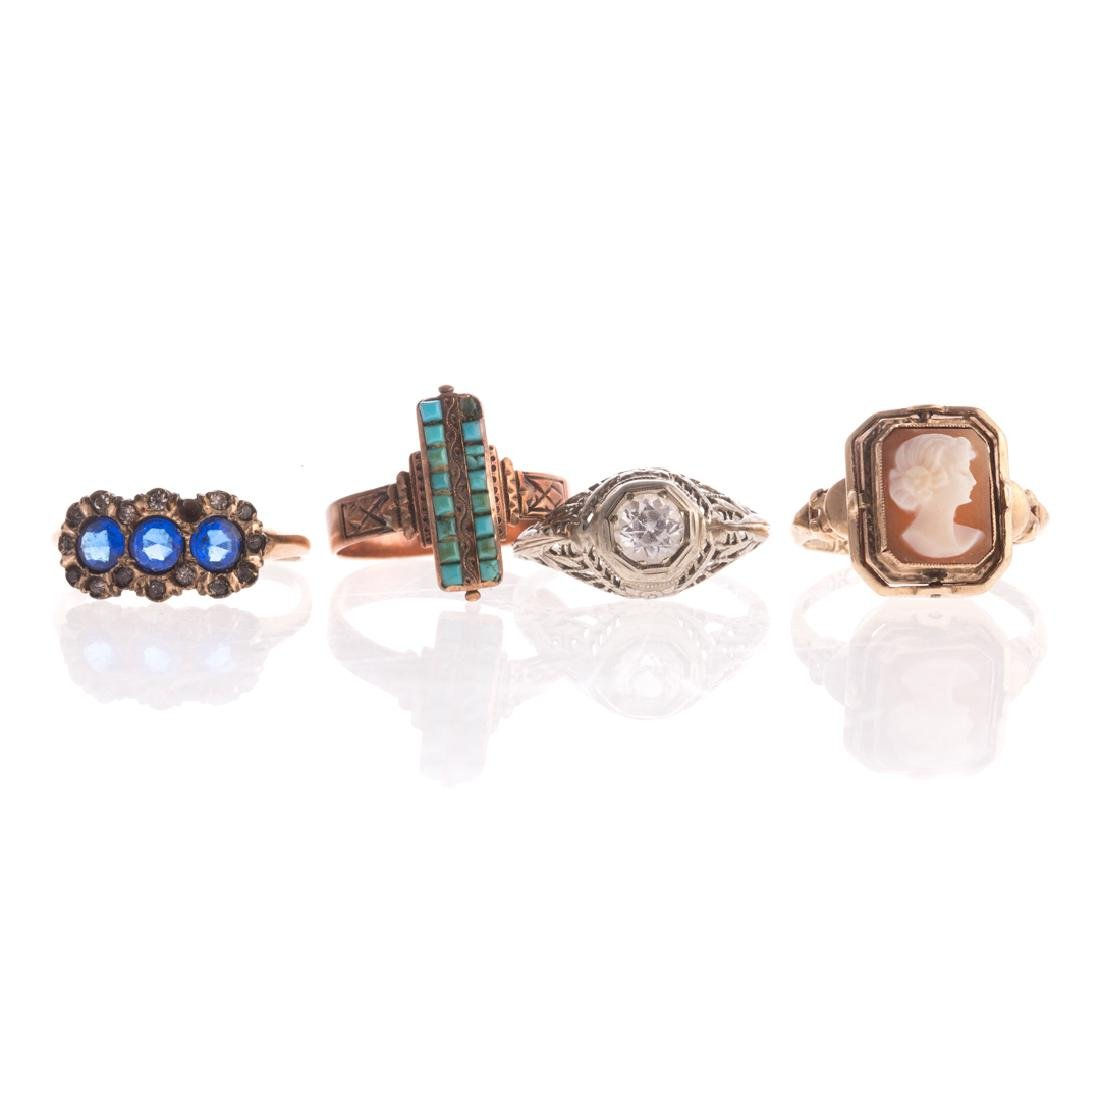 A Collection of Lady's Rings in Gold